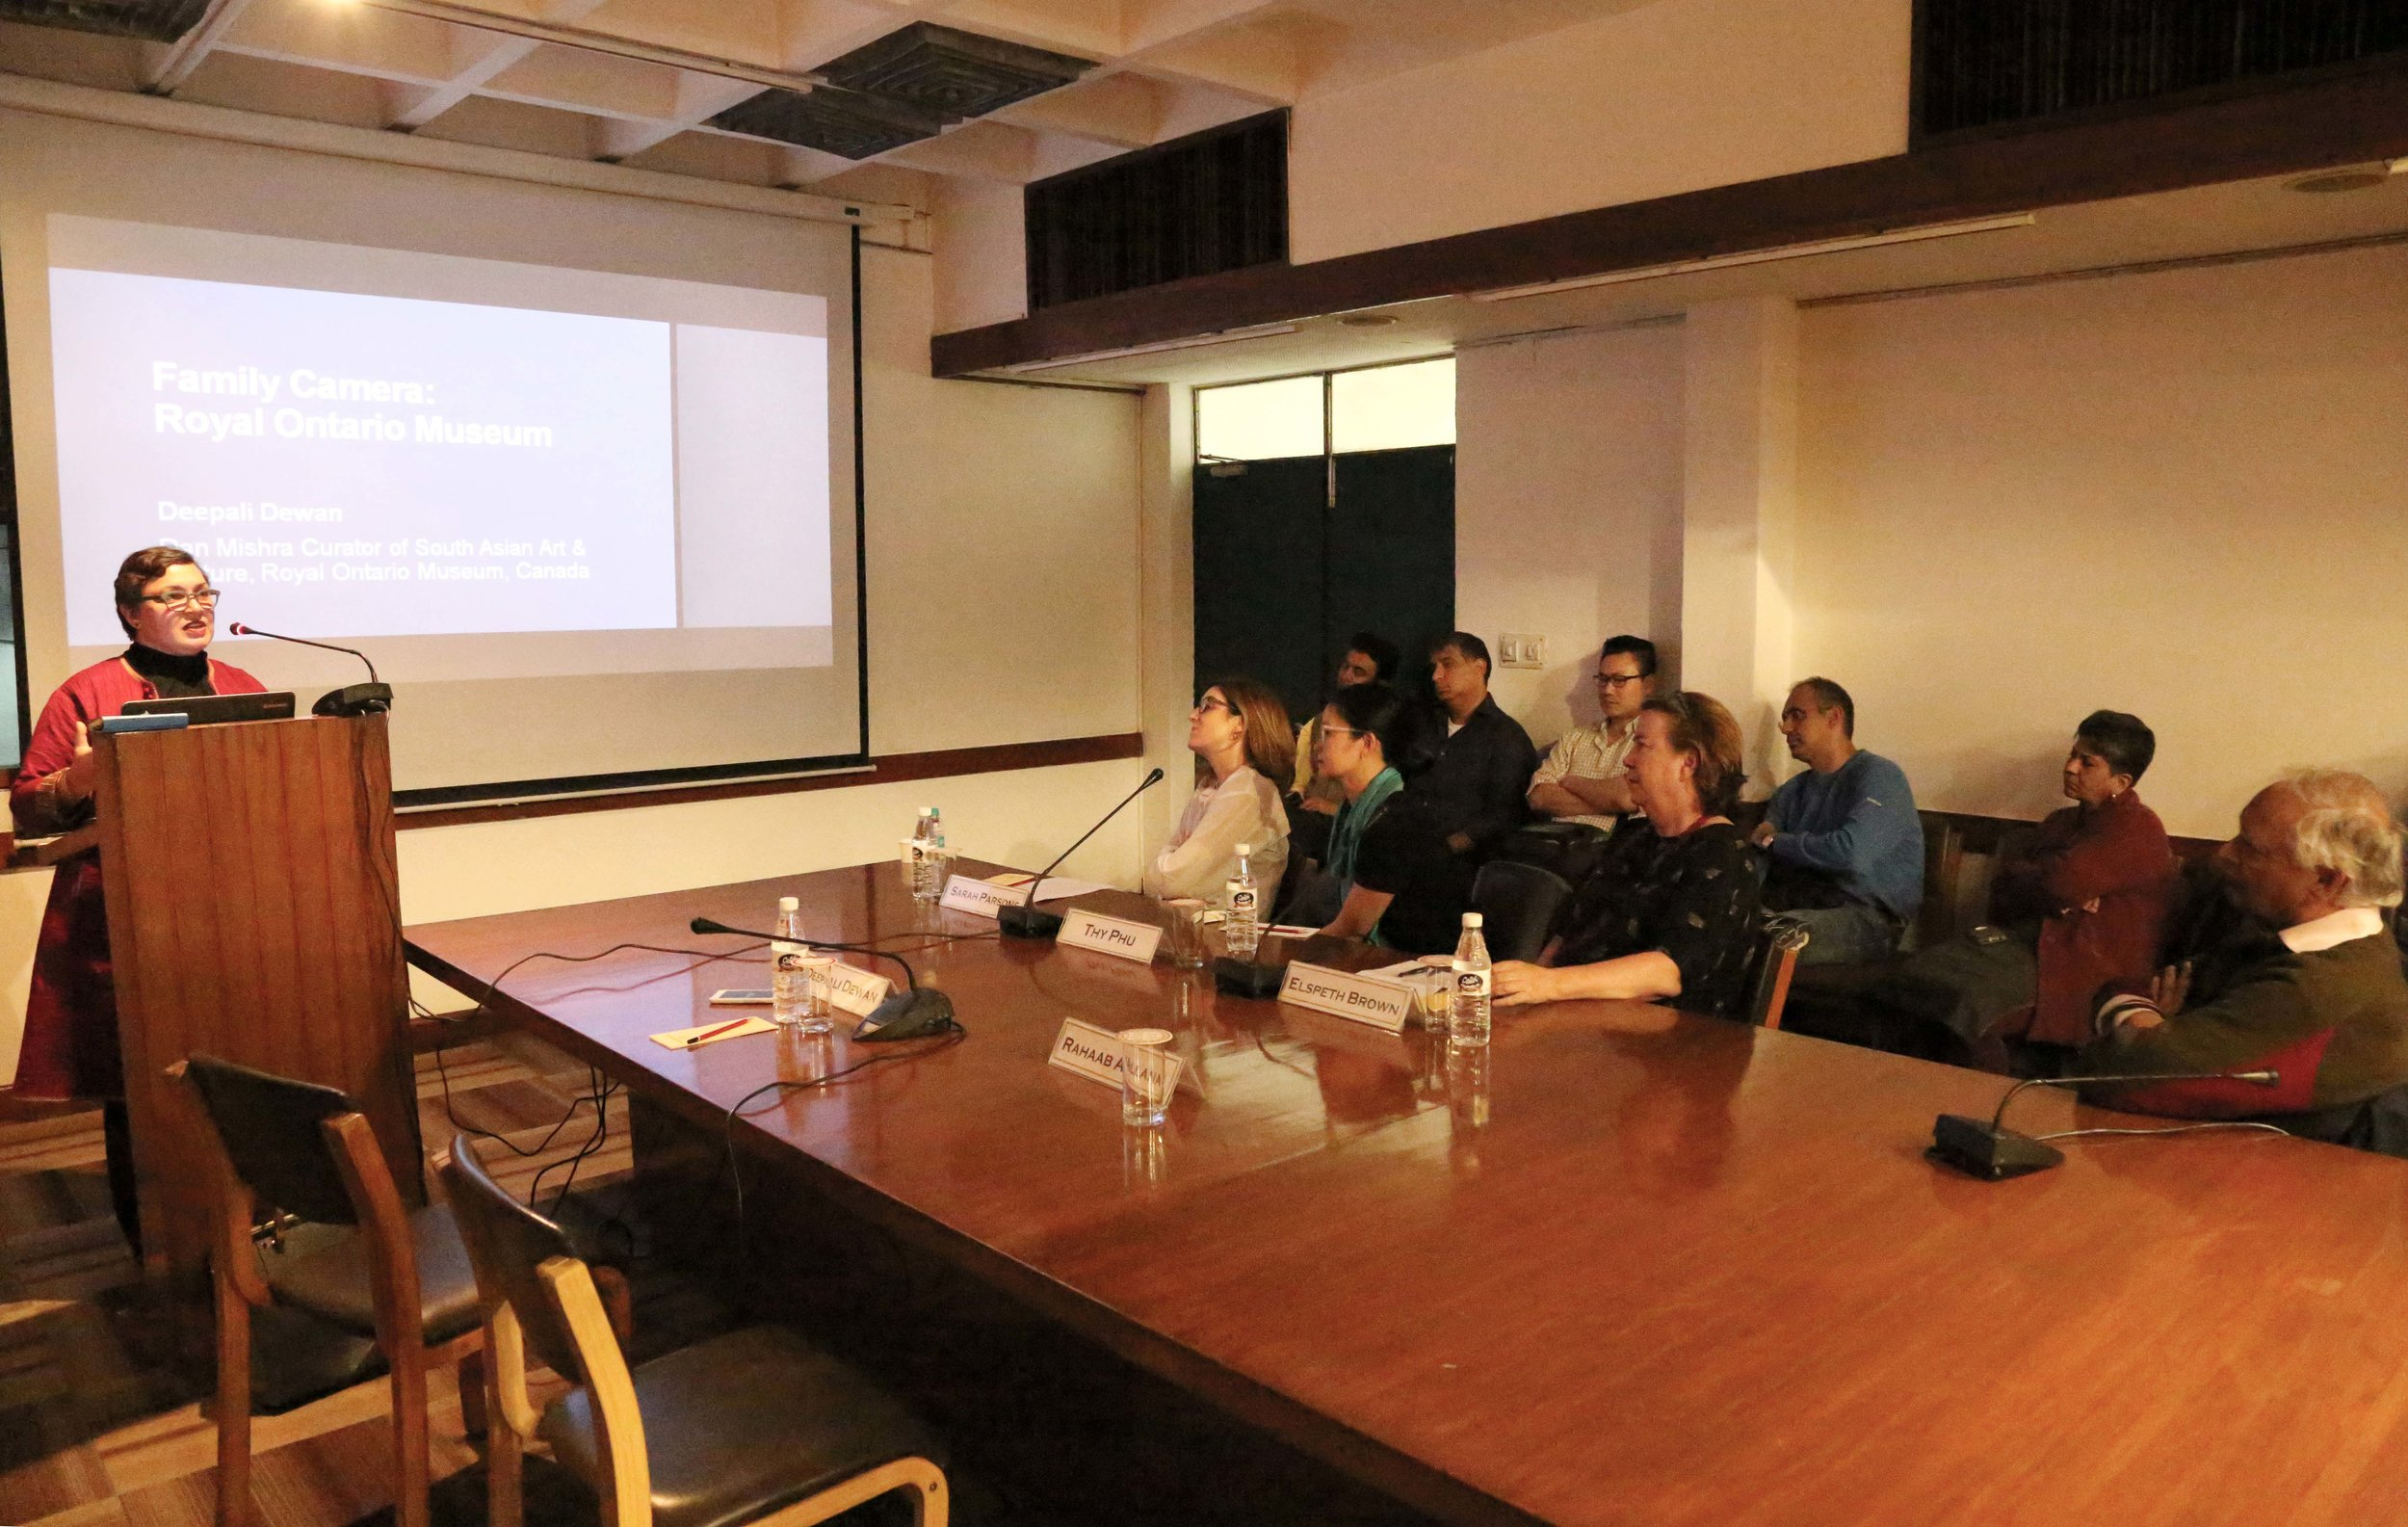 Deepali Dewan presenting at IIC (Photo: Alkazi Photographic Archives, 2019).